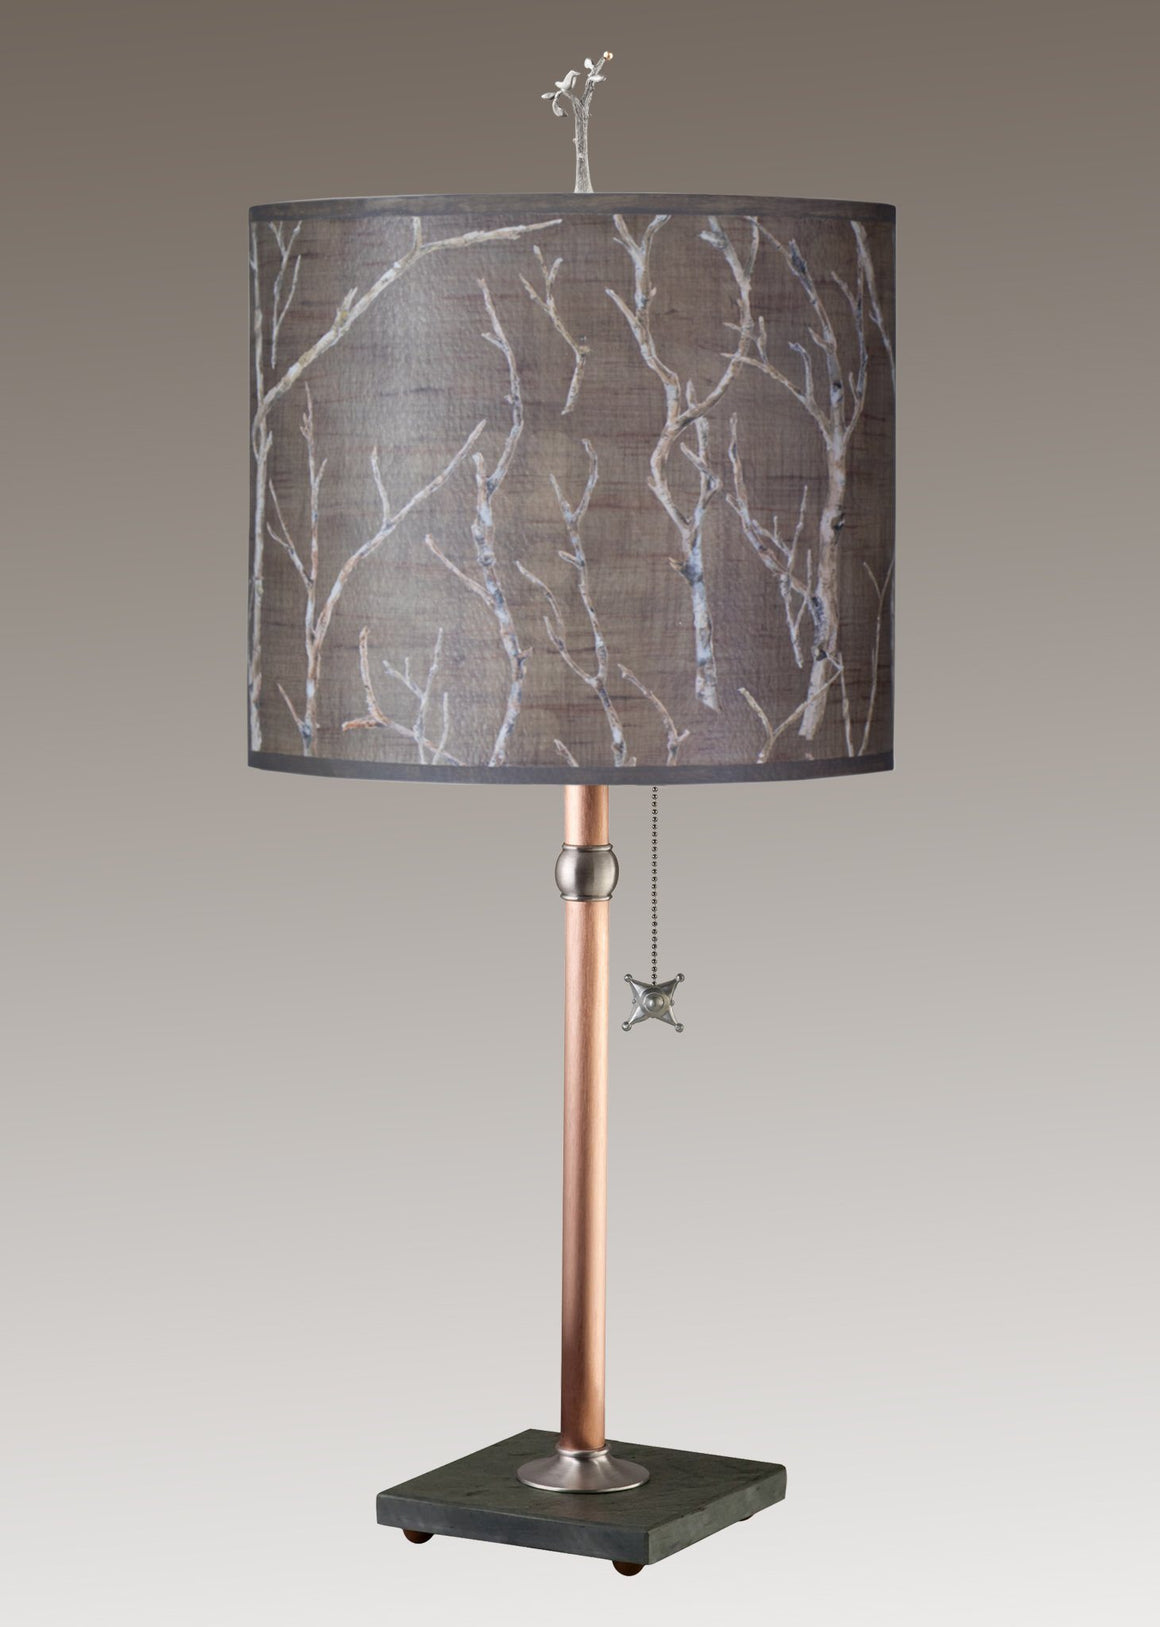 Copper Table Lamp on Vermont Slate Base with Large Oval Shade in Twigs